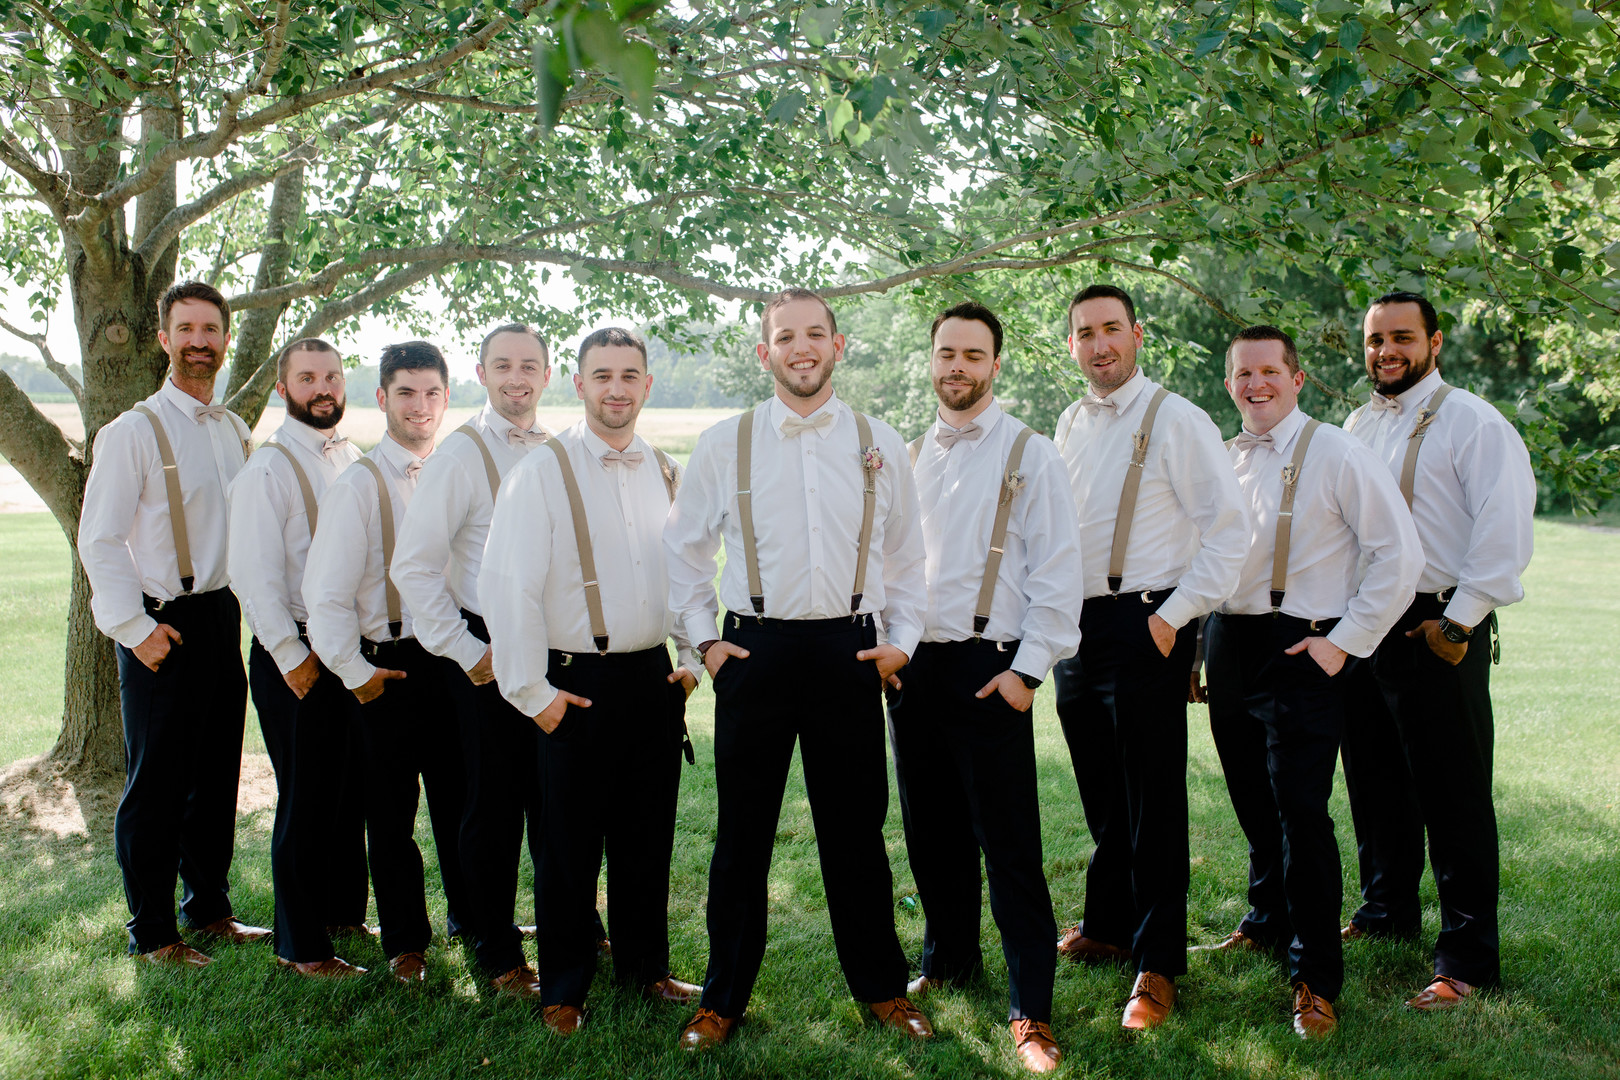 Groomsmen attire: Rustic country wedding in Minooka, IL captured by Katie Brsan Photography. Visit CHItheeWED.com for more wedding inspiration!